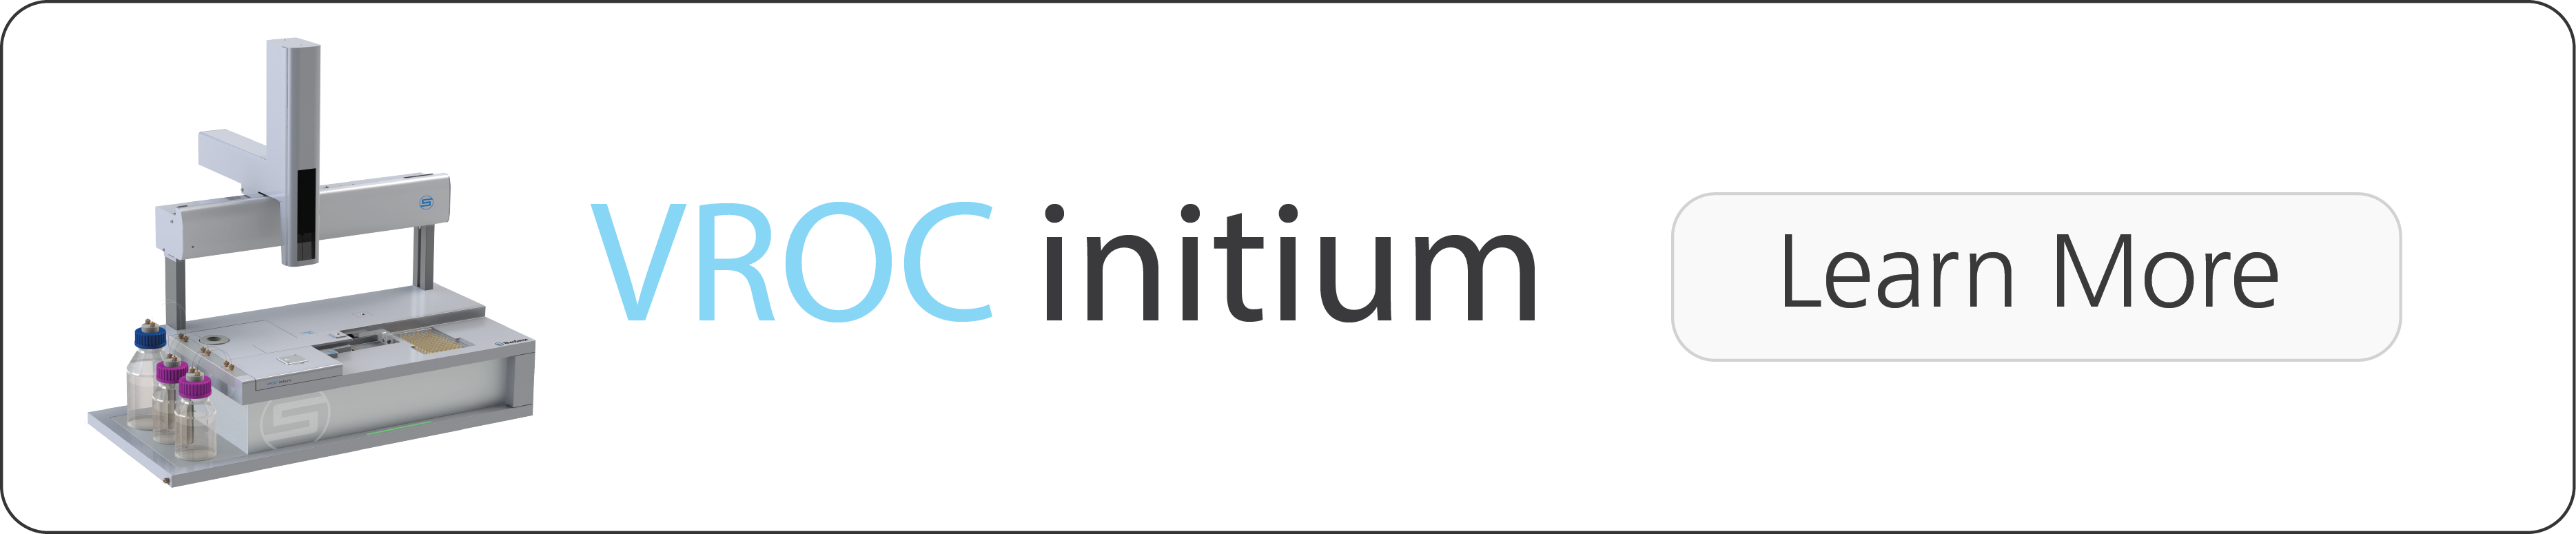 View Product Preview Page for VROC initium